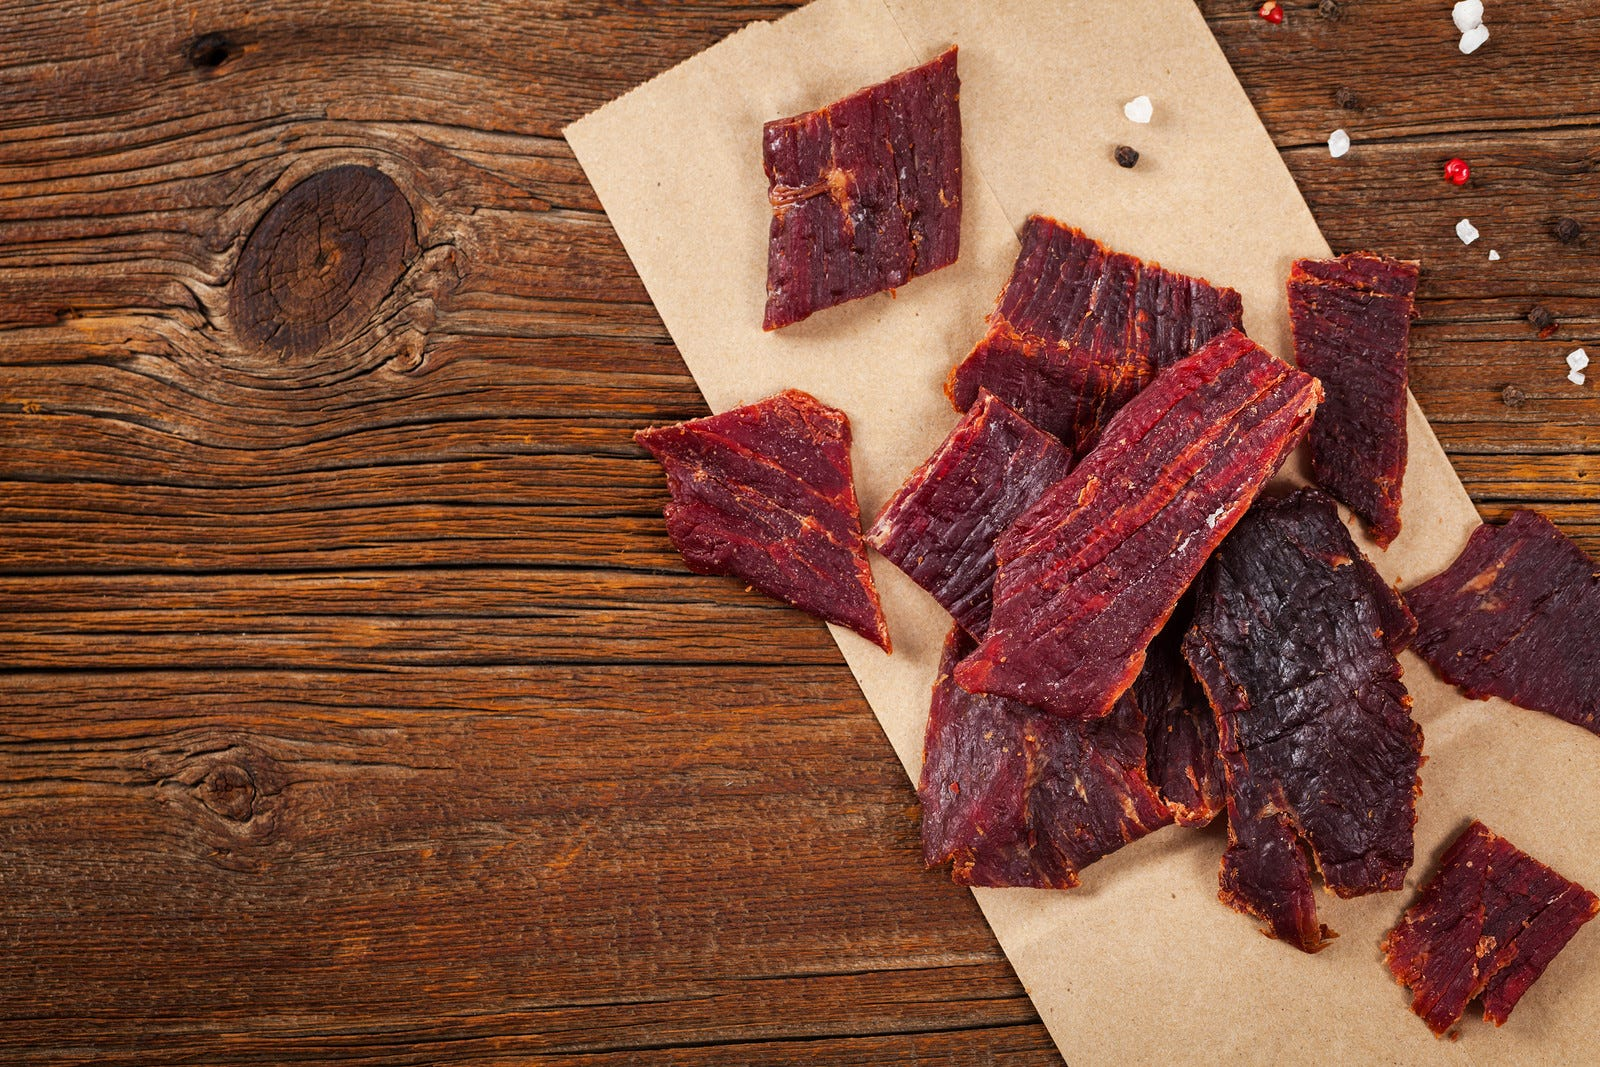 Light in Sodium, All-Natural Beef Jerky Launches in Response to New FDA Guidelines